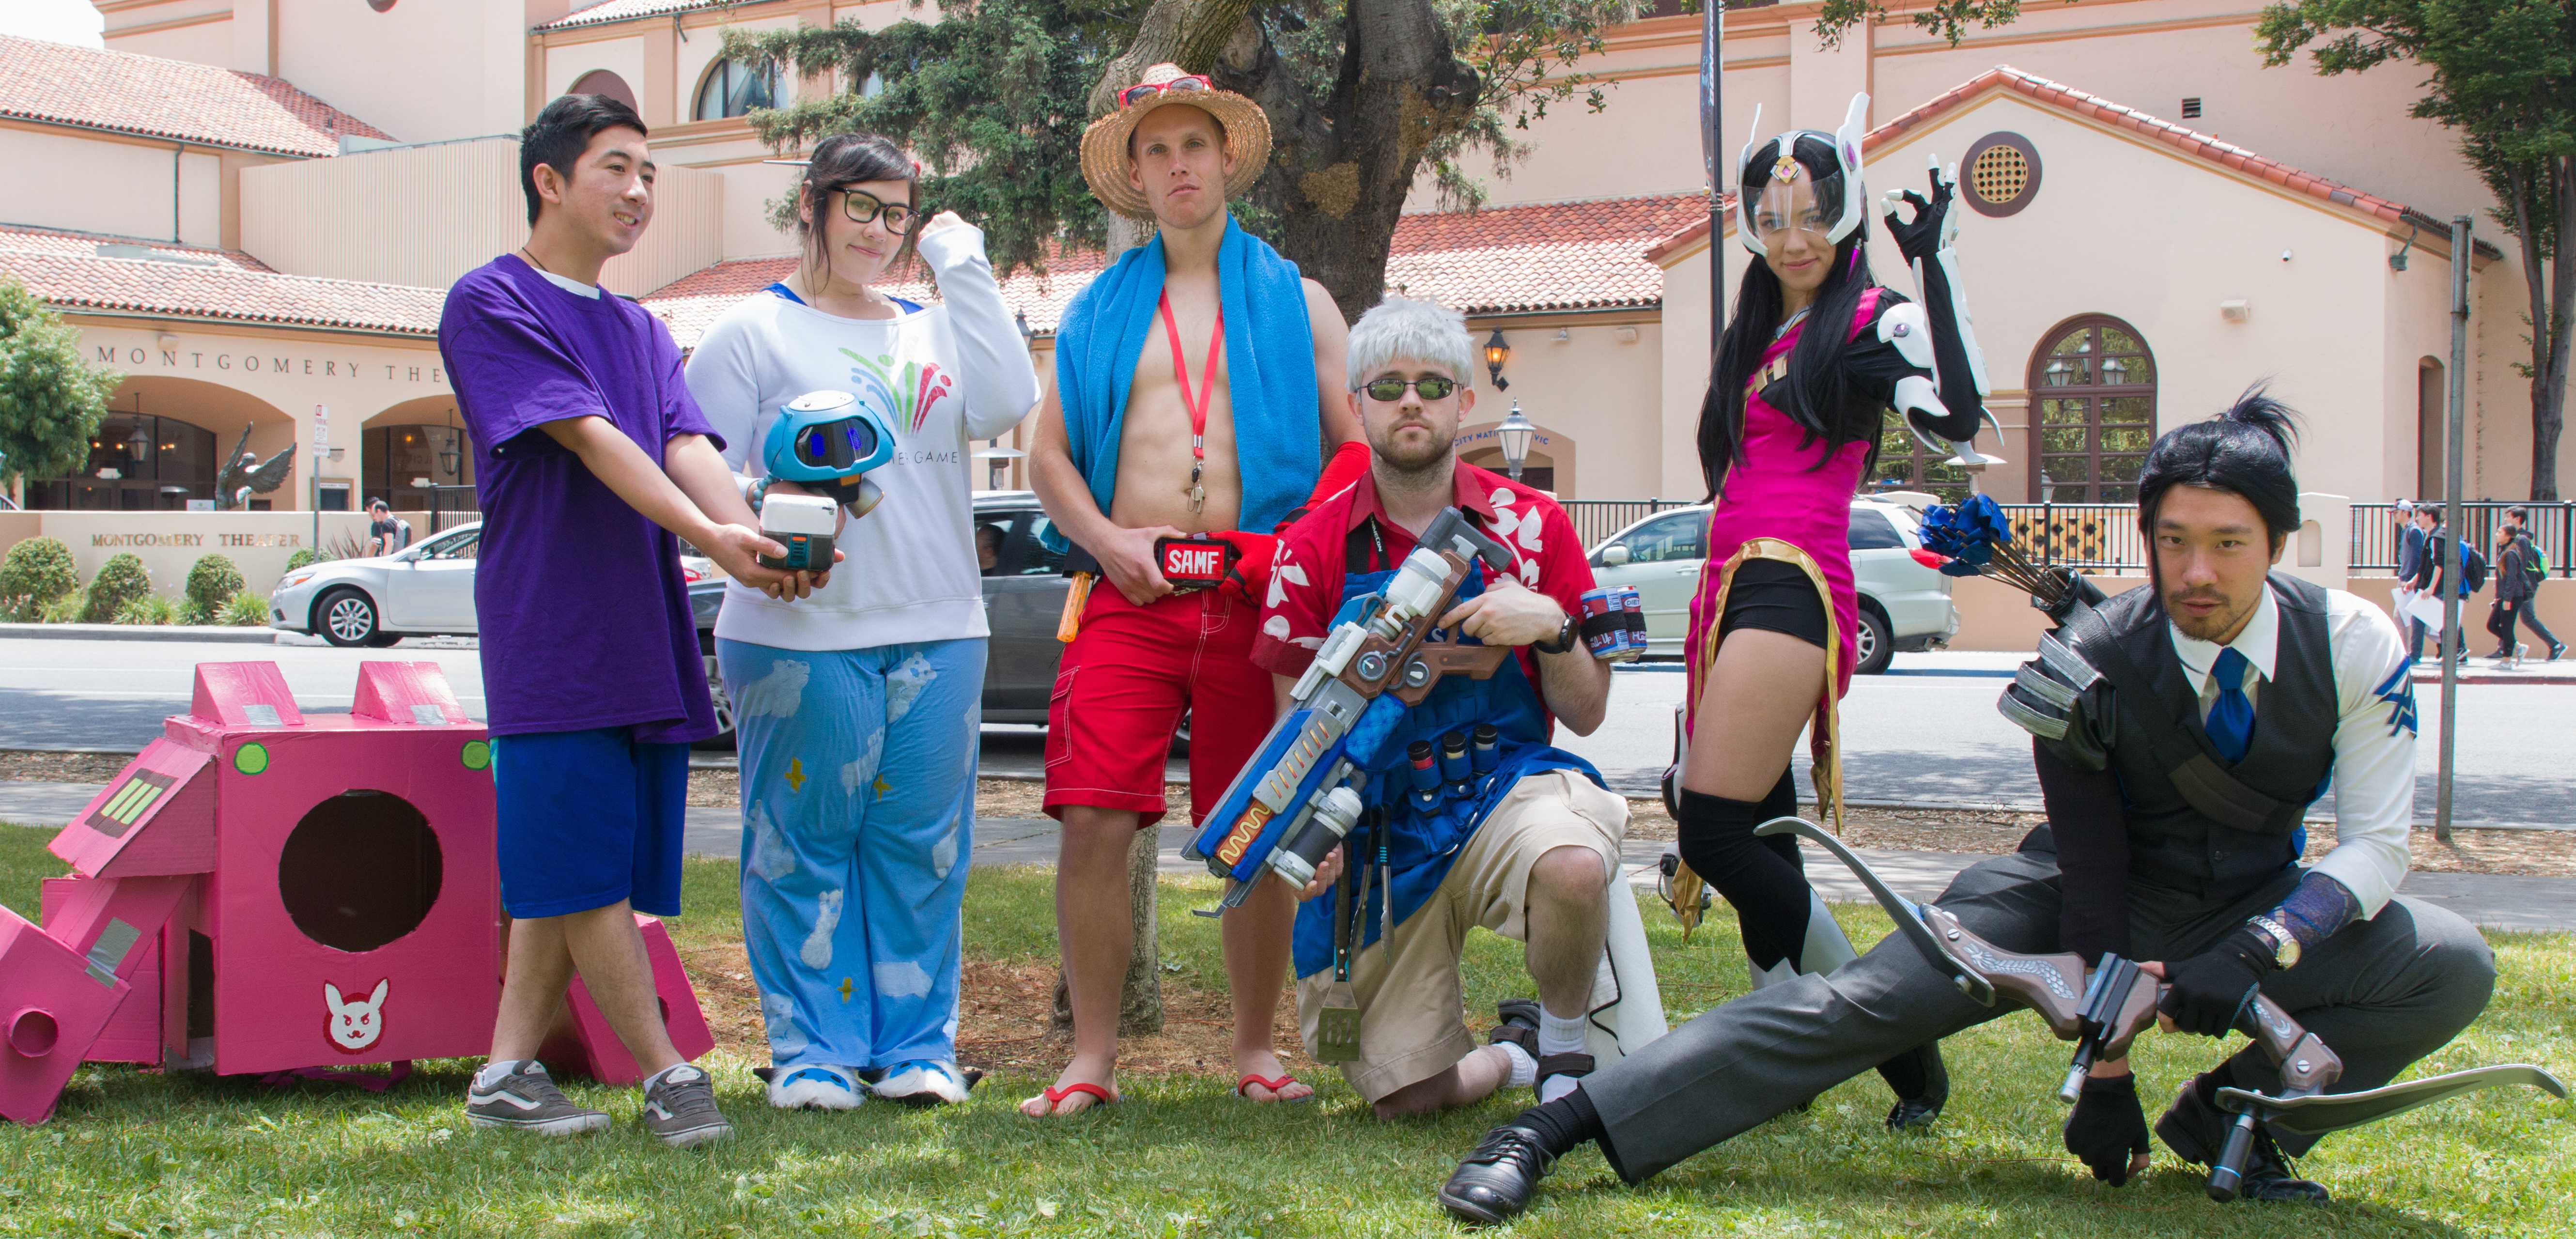 Overwatch Cosplay At FanimeCon 2018!